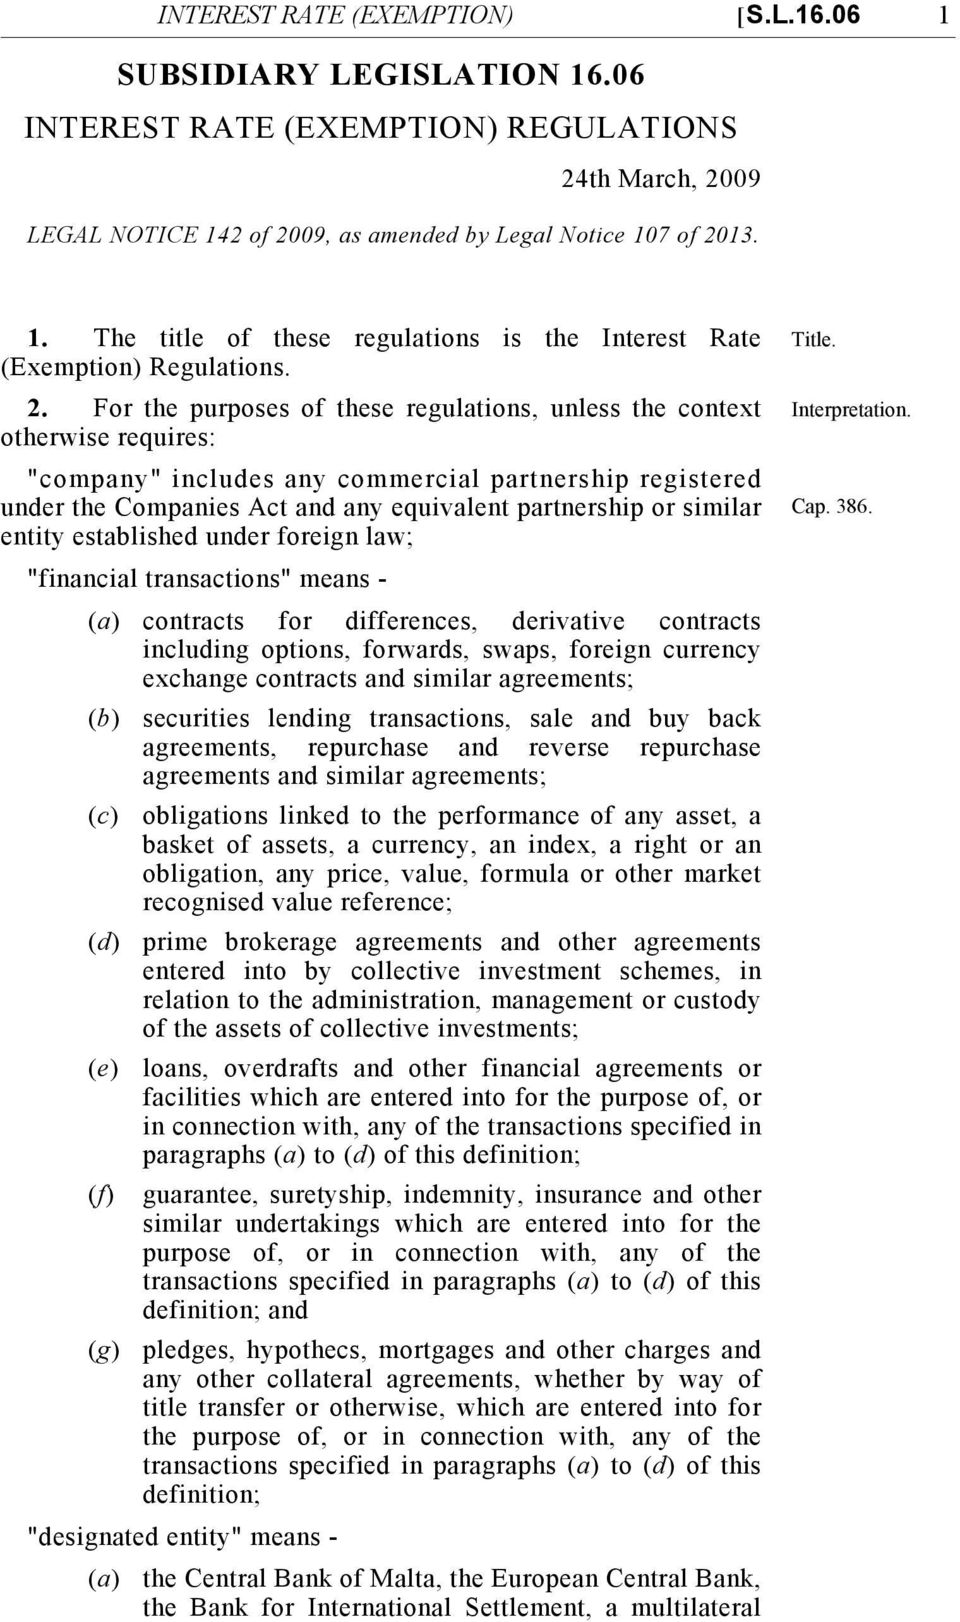 "similar entity established under foreign law; ""financial transactions"" means - (a) contracts for differences, derivative contracts including options, forwards, swaps, foreign currency exchange"